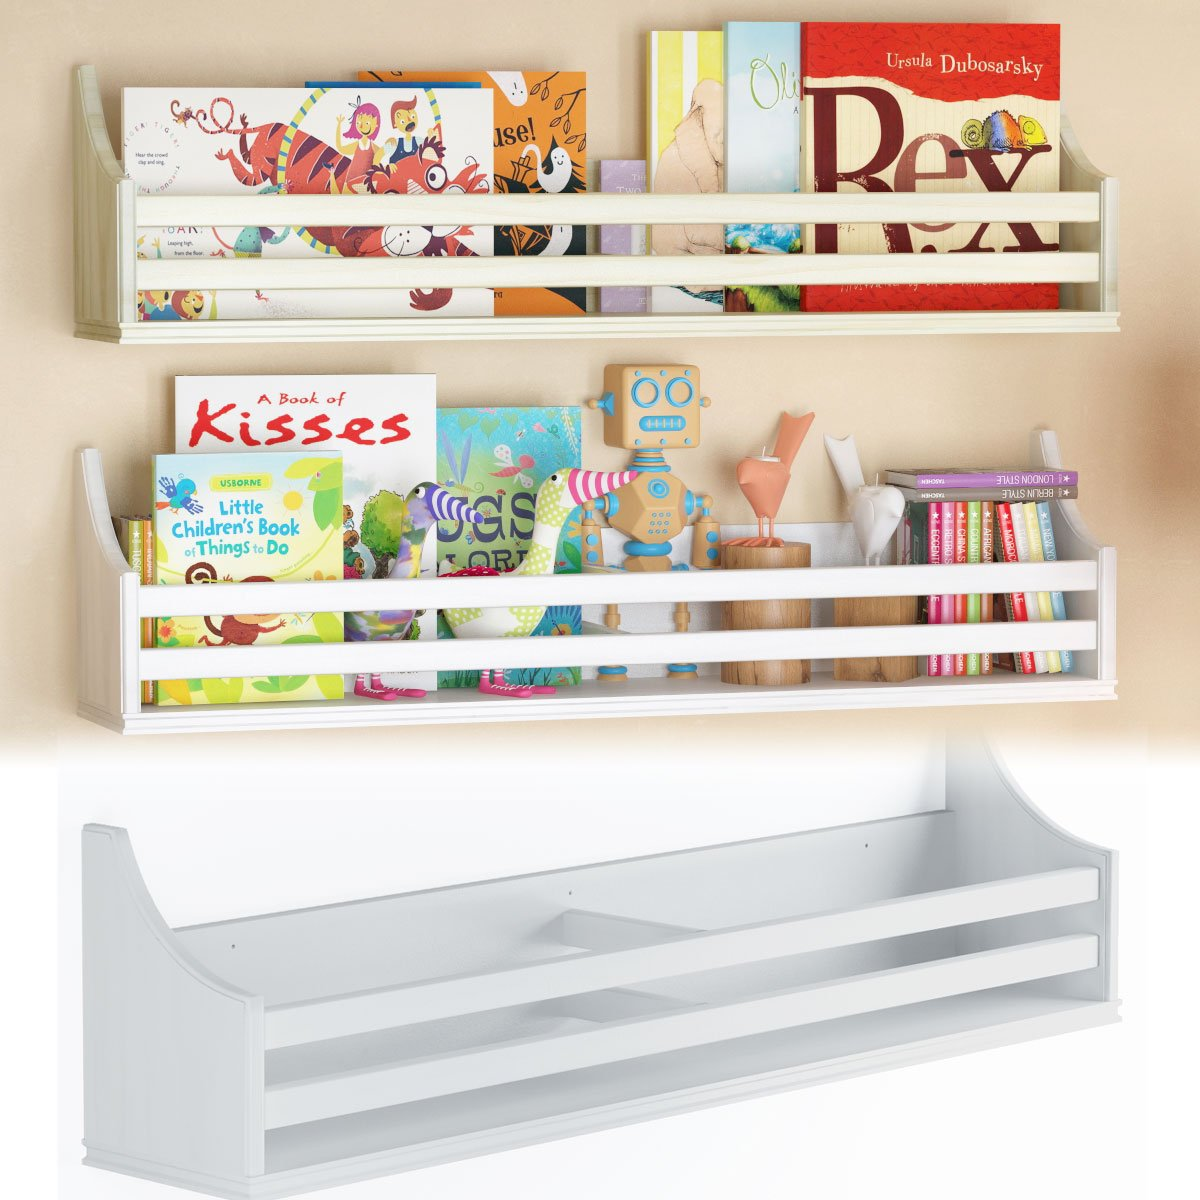 BGT Children's Wood Wall Shelf Multi Purpose 30 Inch Bookcase Toy Game Storage Display Organizer Traditional Country Molding Style Ships Fully Assembled (White)